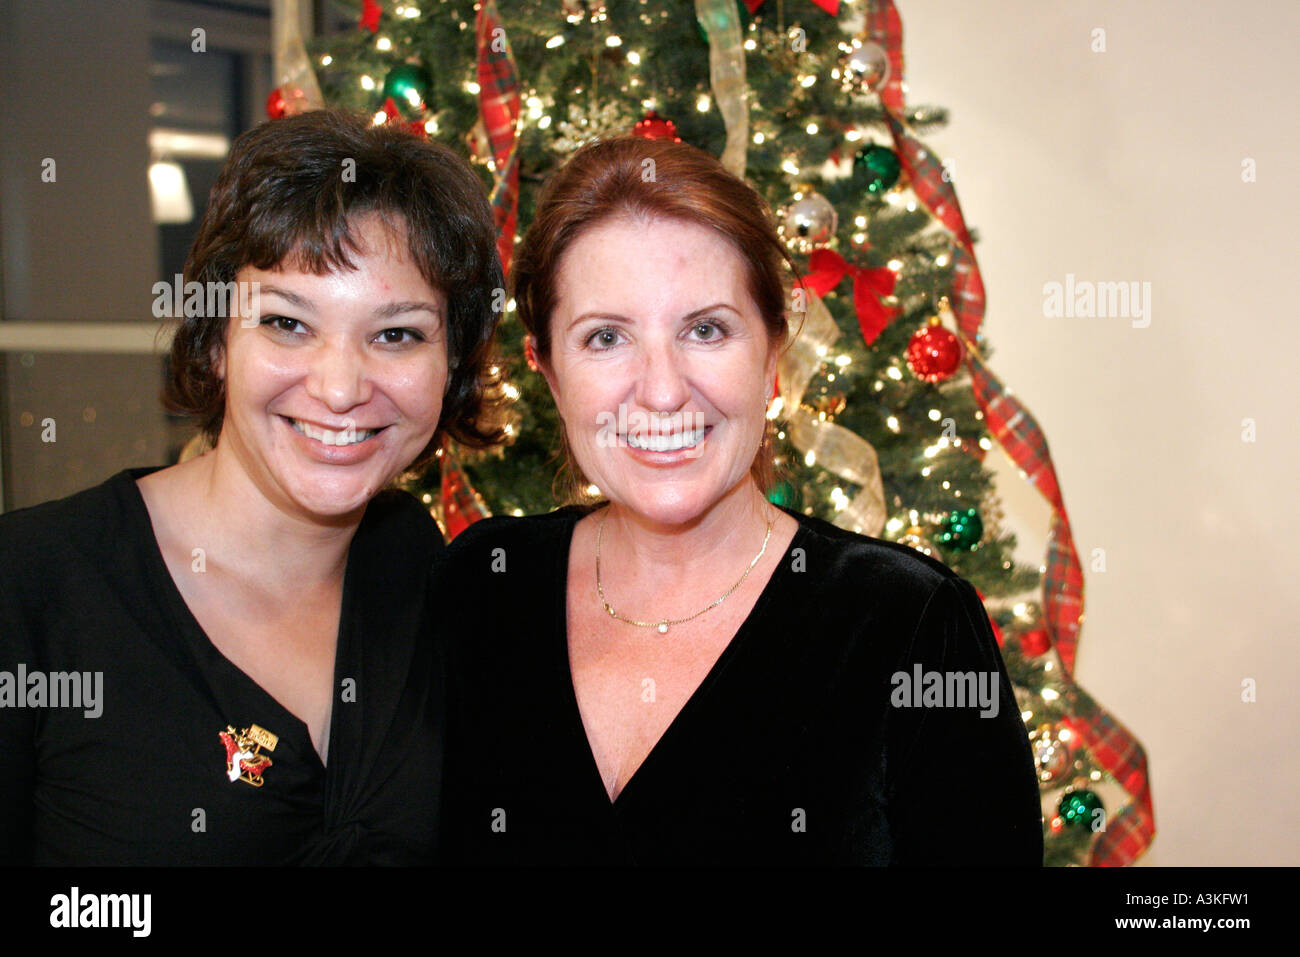 Miami Florida office Christmas party coworkers women tree ...